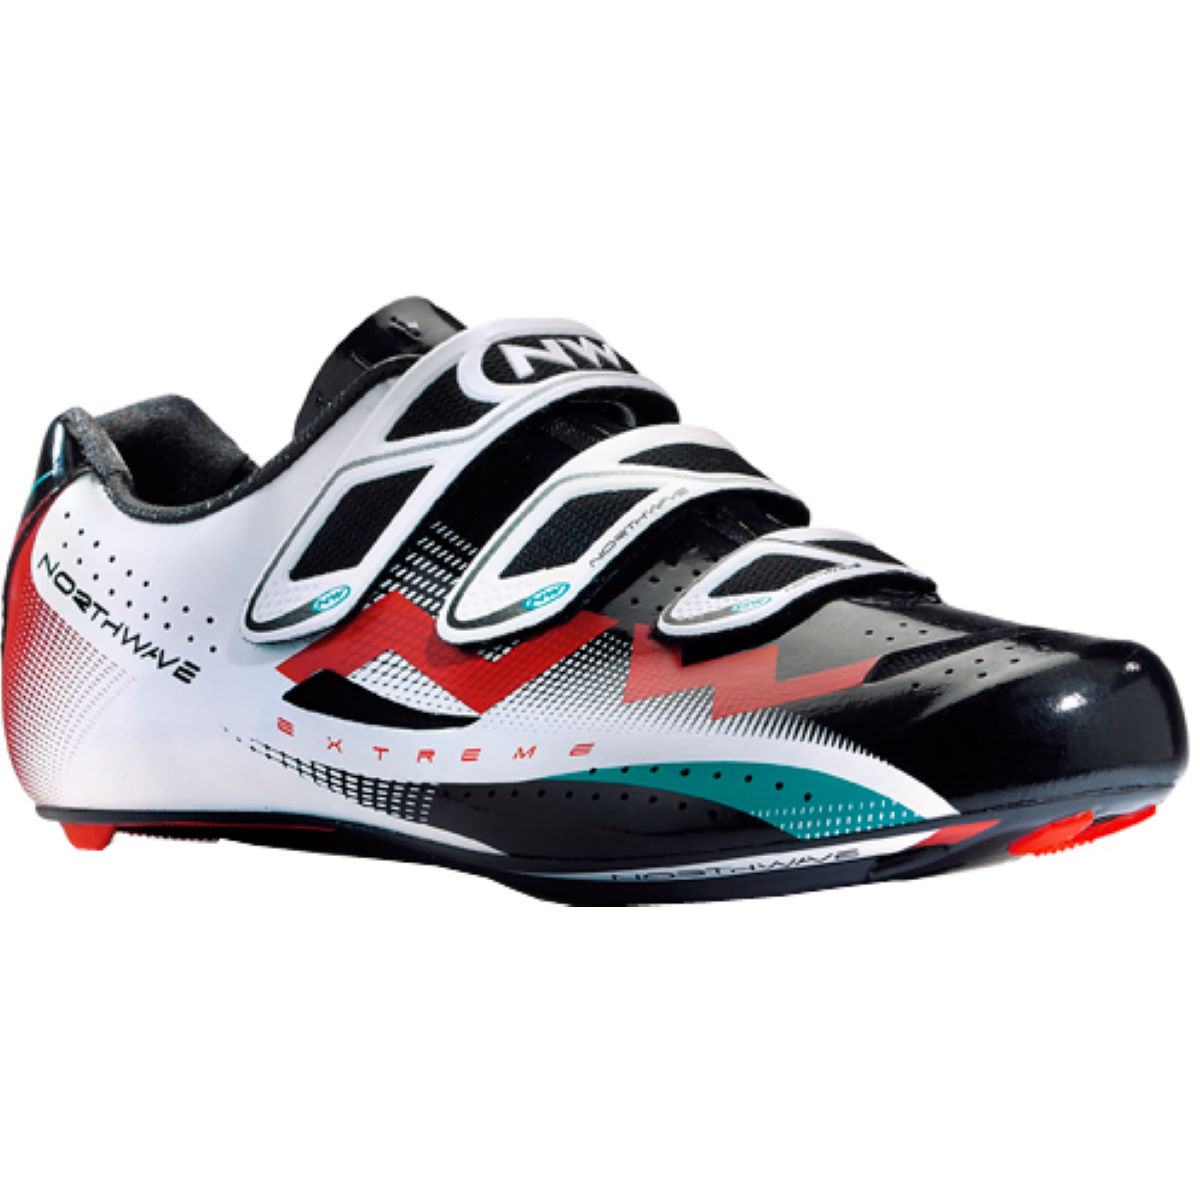 Chaussures Northwave Extreme Tech 3S Route Noires / Blanches / Rouges - 41 Black/White/Red Chaussures de route